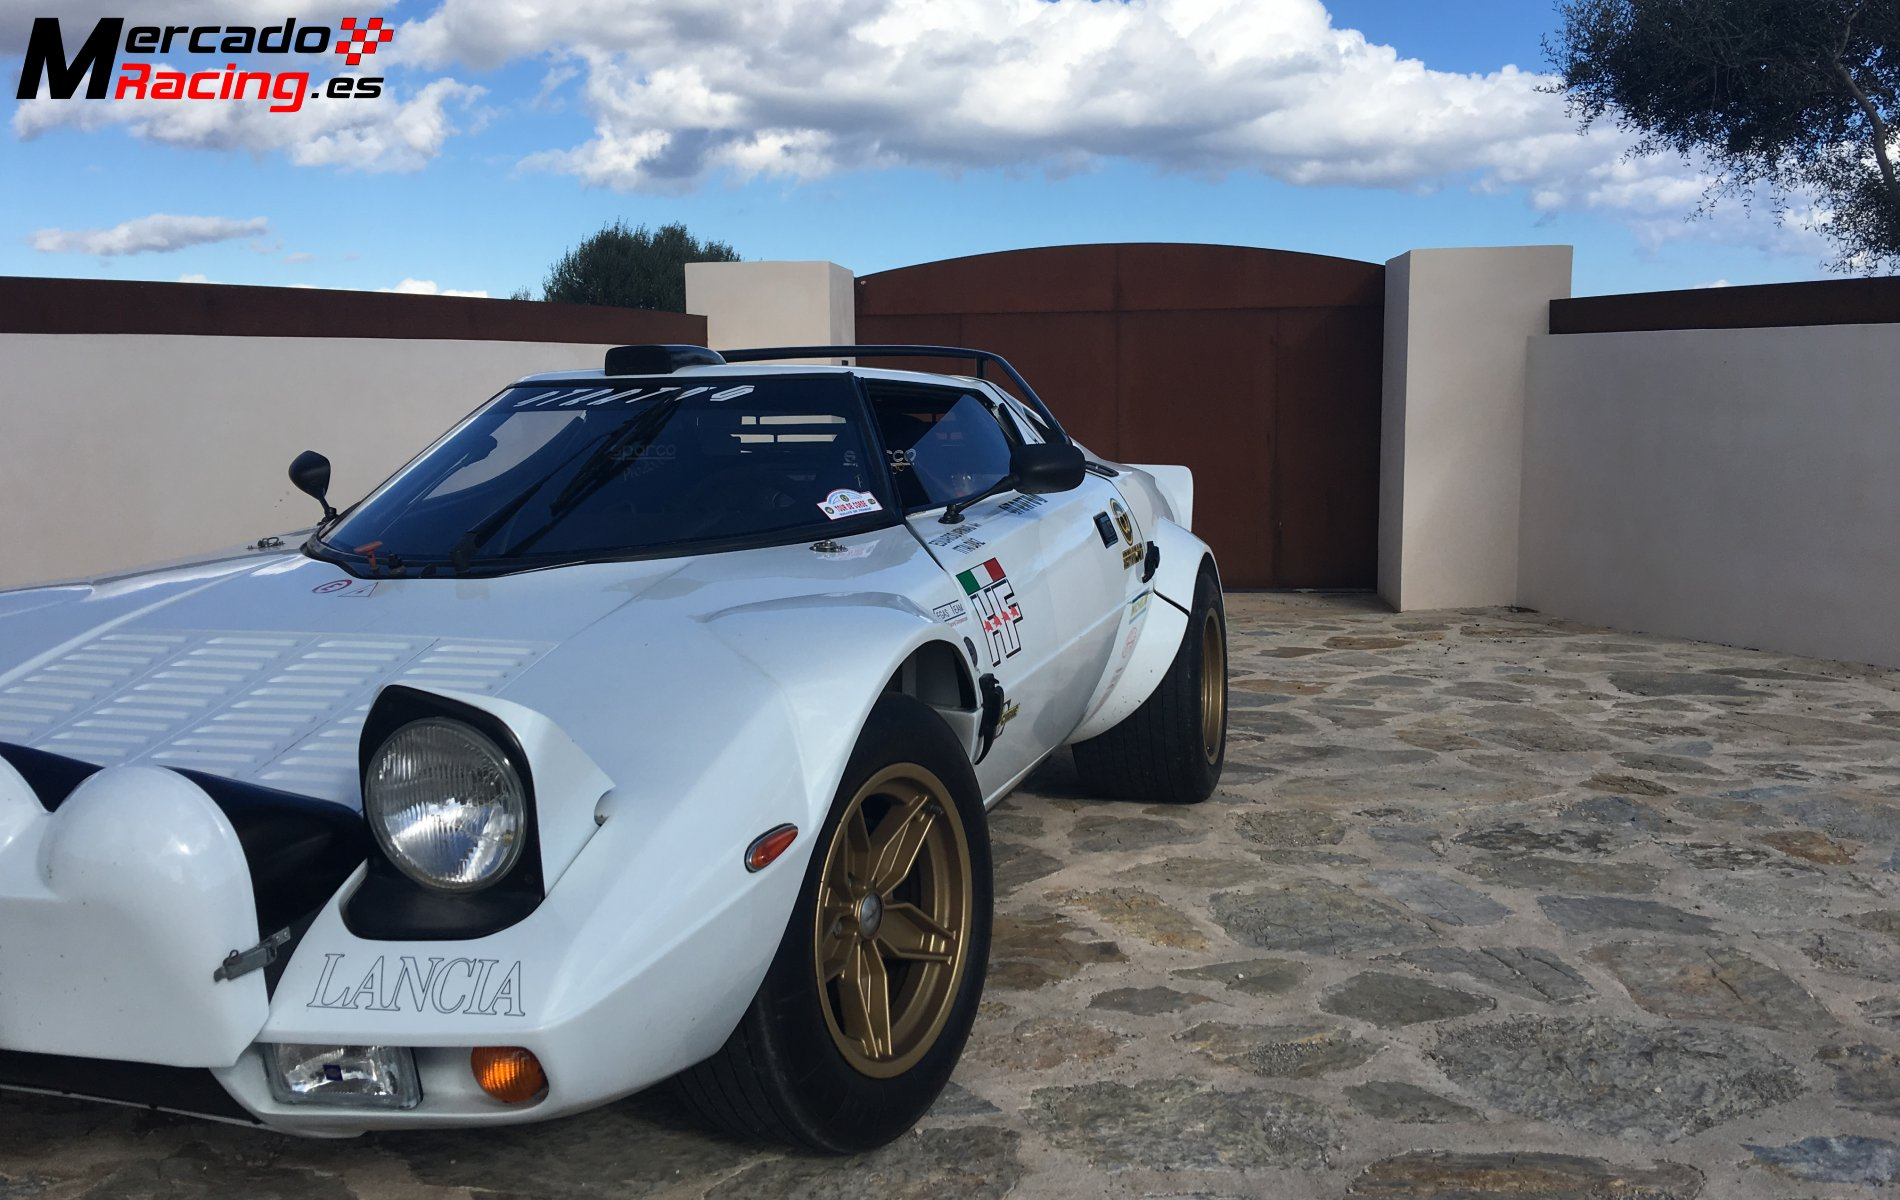 The next factory five kit car includes subaru page 5 grassroots - Lancia Stratos Hawk Hf 3000 Replica Venta De Coches De Lancia Stratos Kit Car